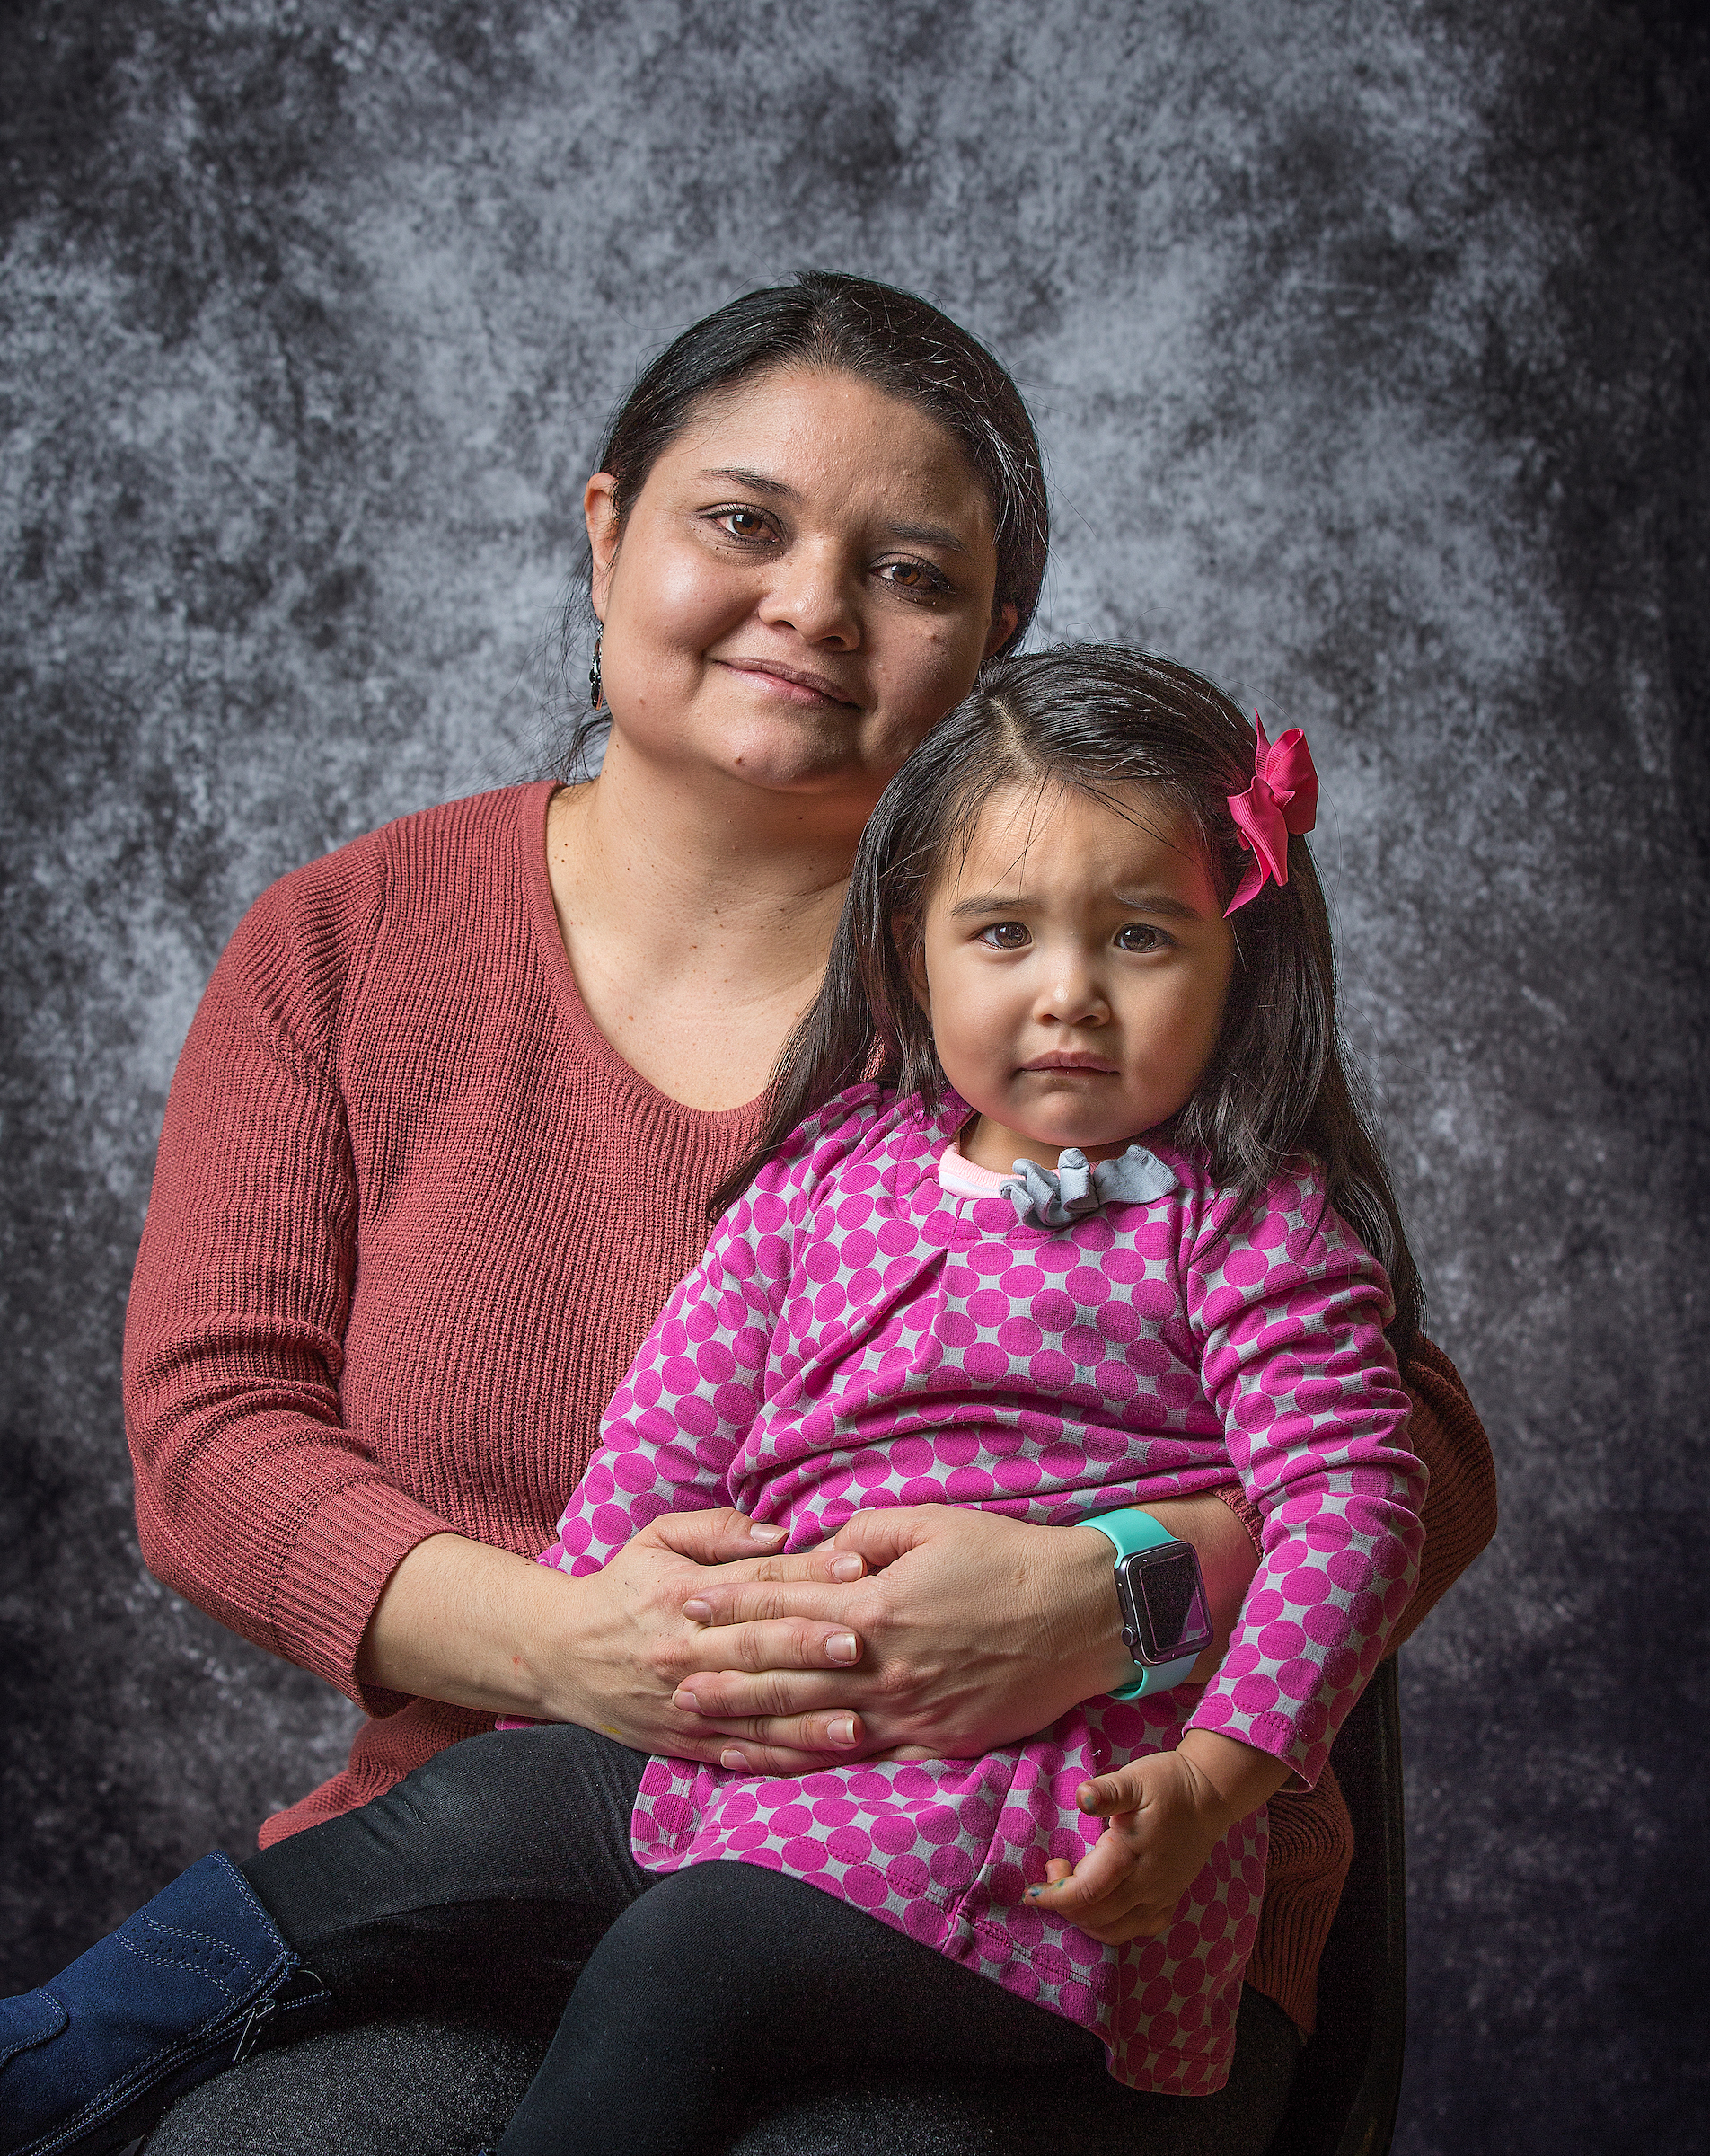 JENNIFER by Gary Porter for WI Immigrant Journeys